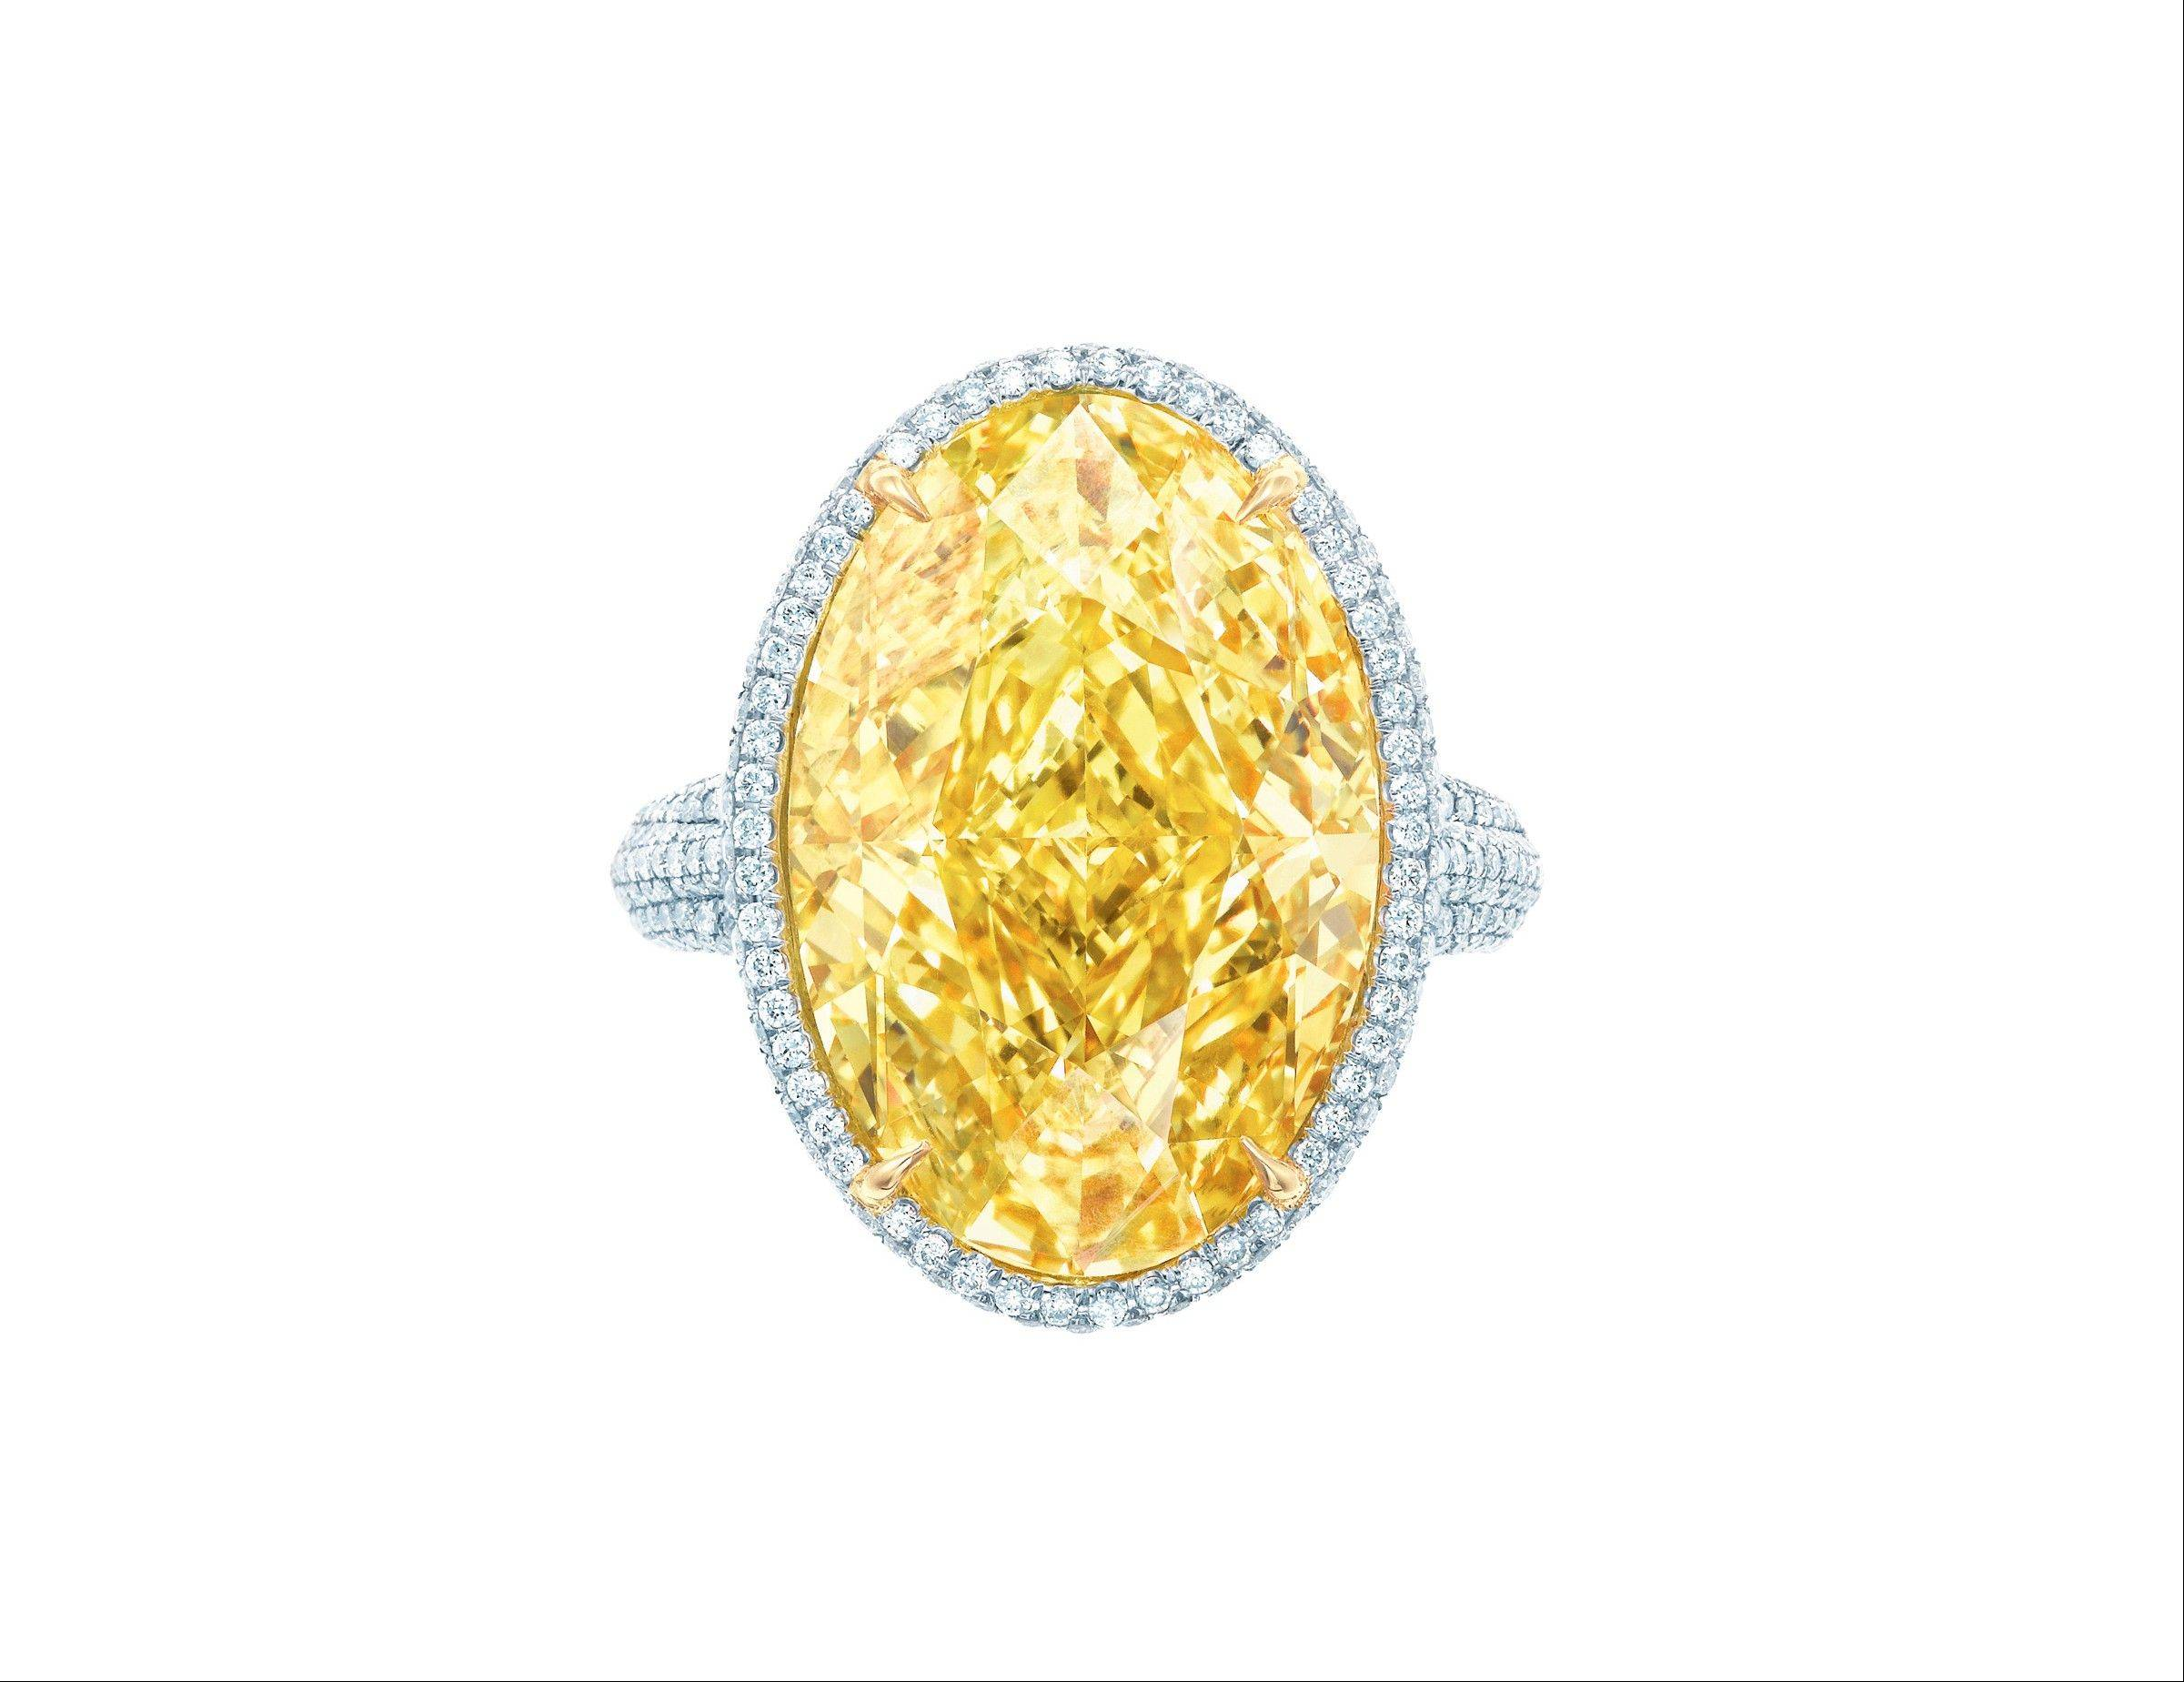 A 15-carat oval fancy vivid yellow diamond ring with white diamonds and set in platinum and 18-carat yellow gold.